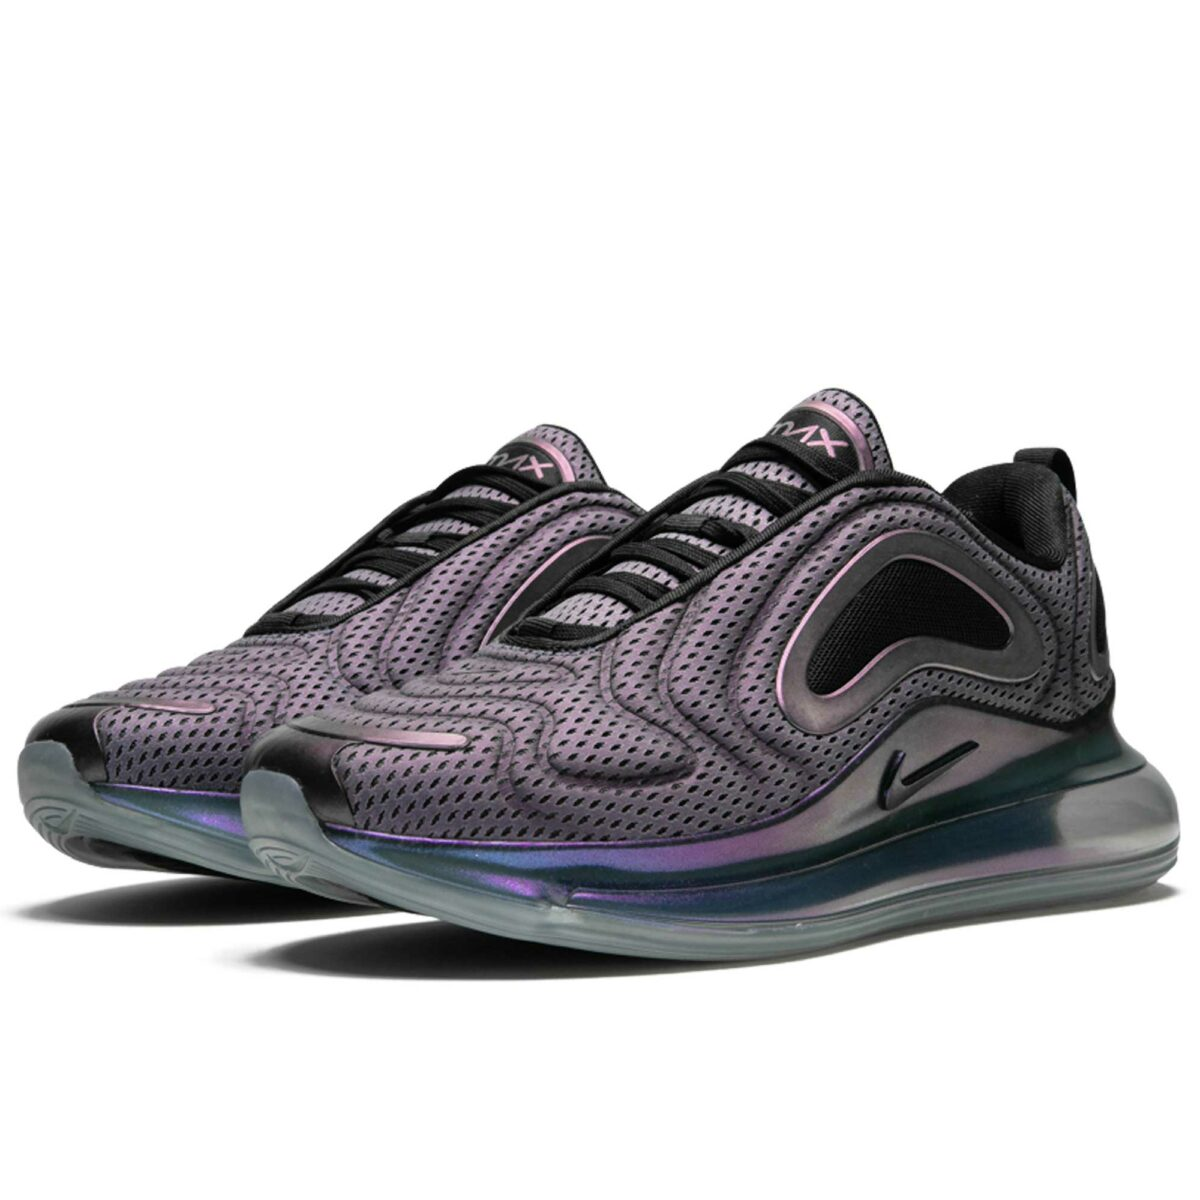 nike air max 720 metallic silver AO2924_001 купить